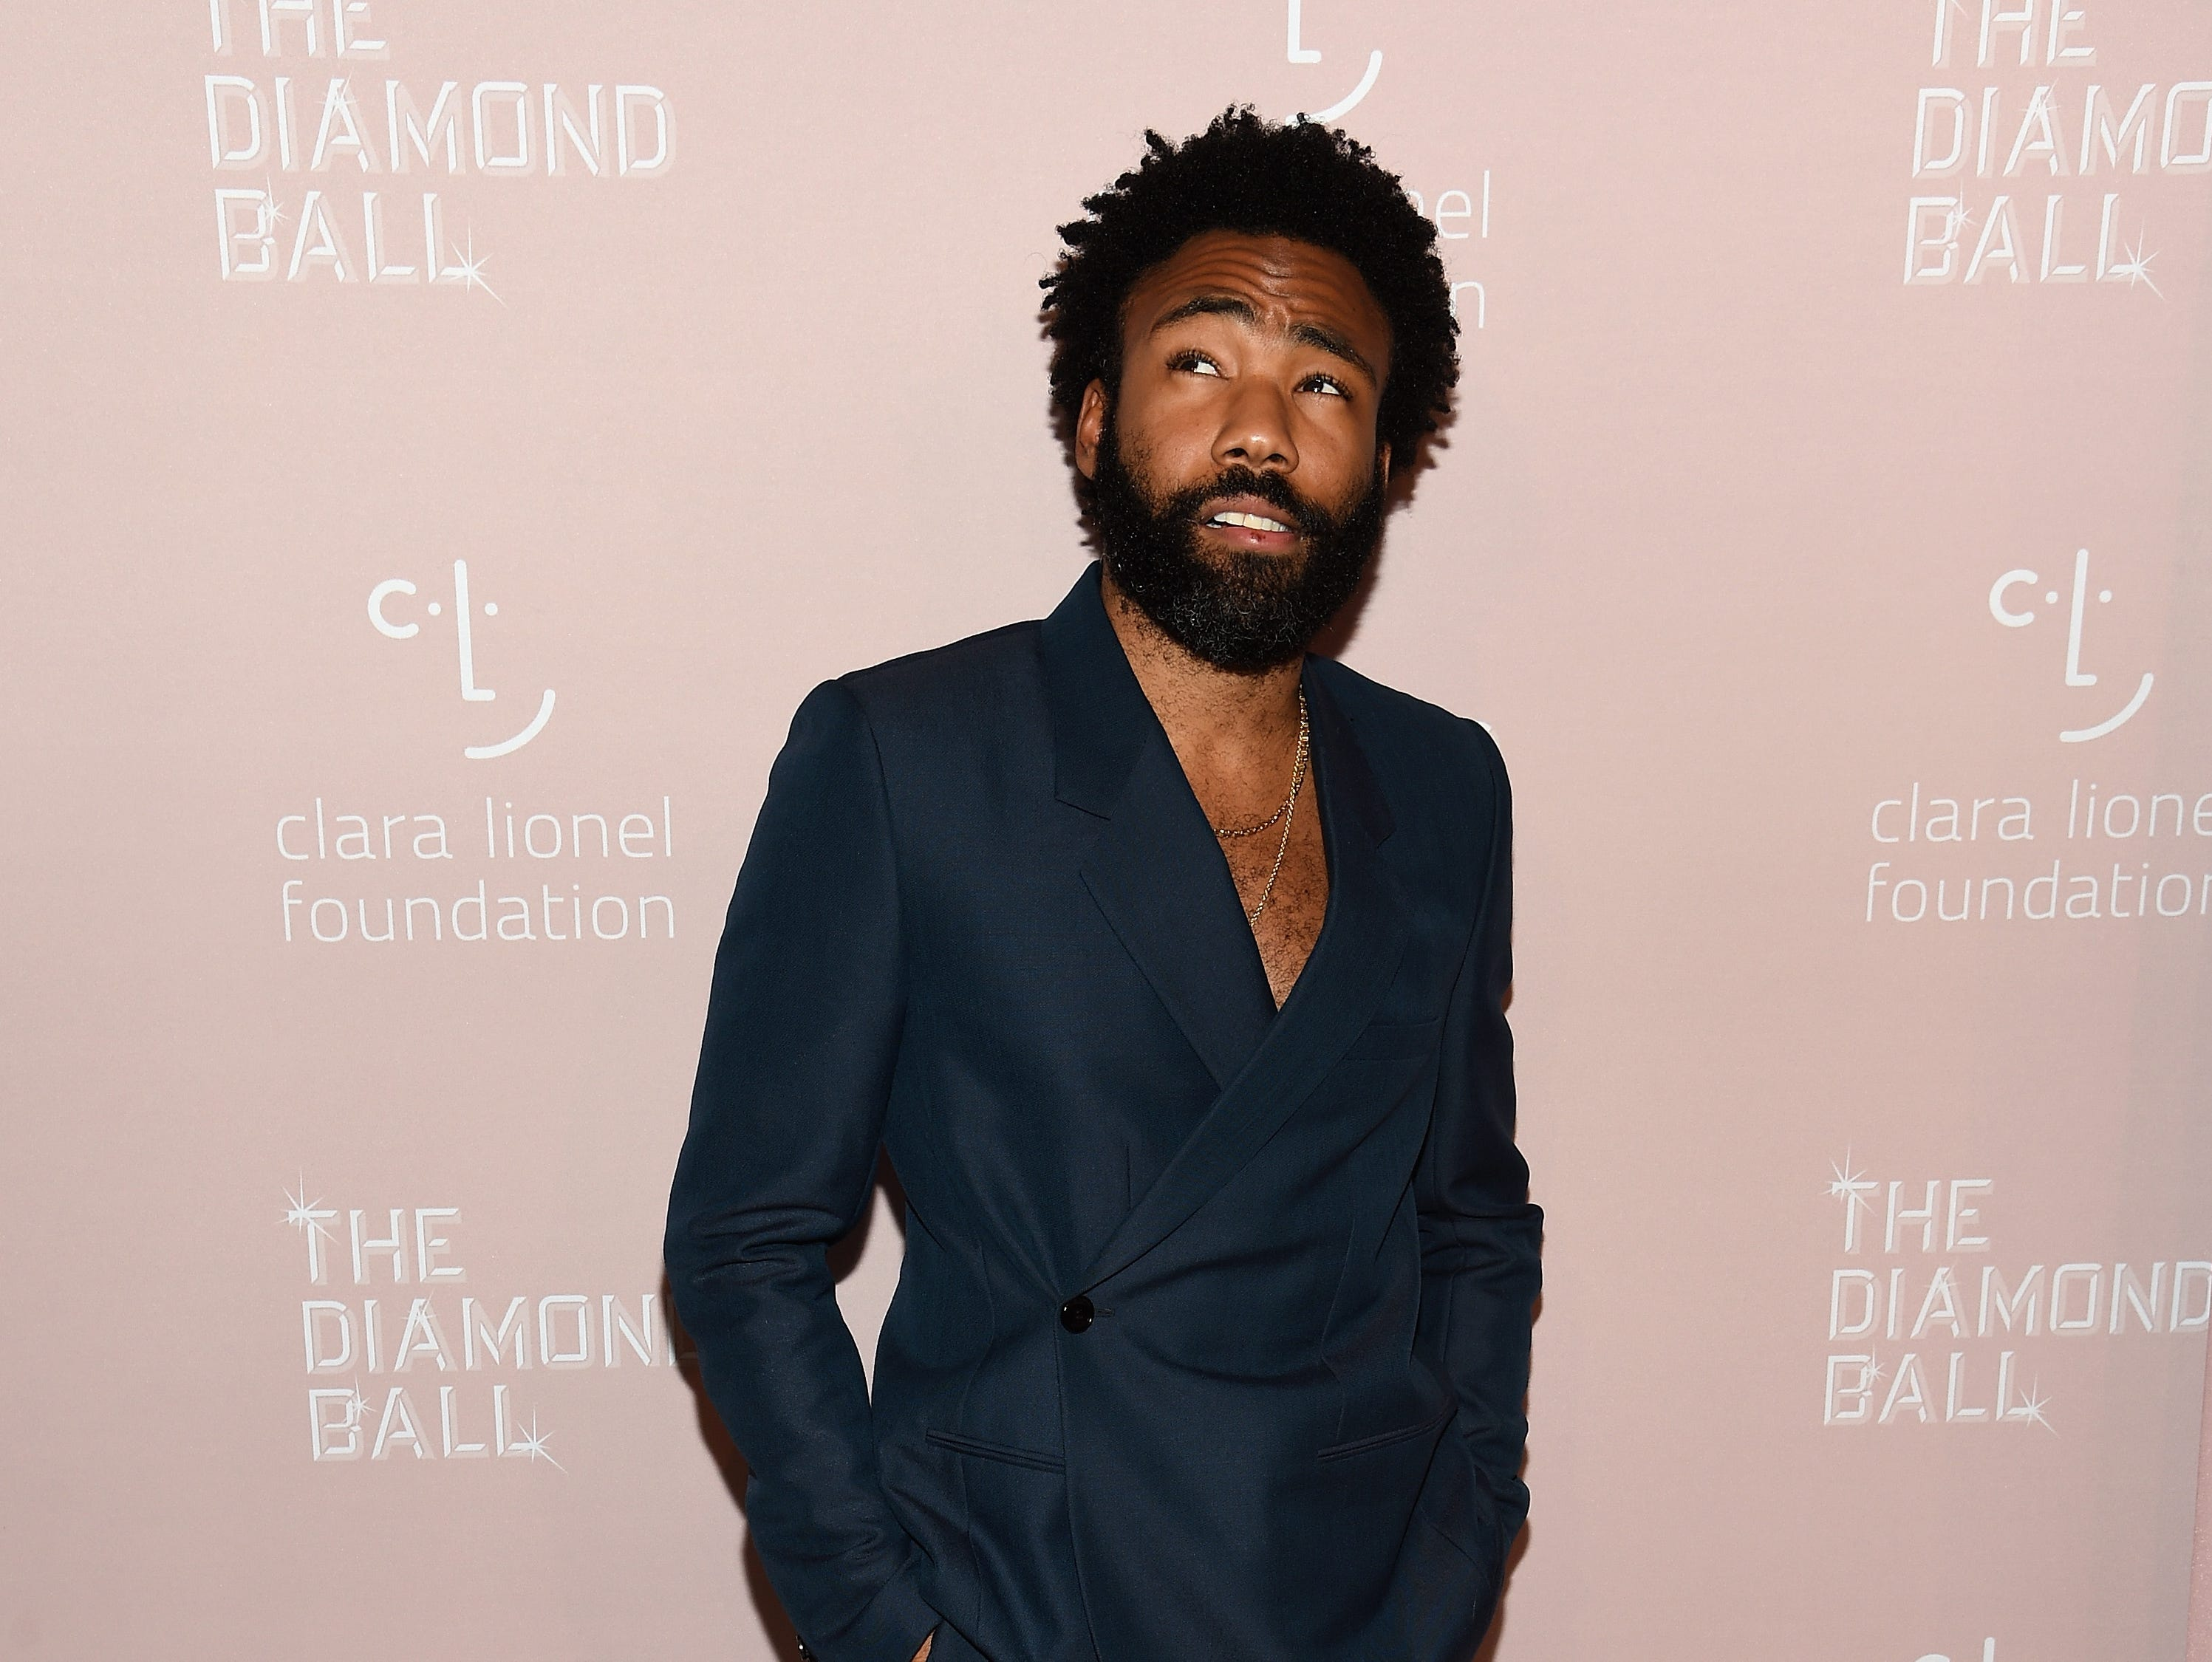 NEW YORK, NY - SEPTEMBER 13:  Childish Gambino attends Rihanna's 4th Annual Diamond Ball benefitting The Clara Lionel Foundation at Cipriani Wall Street on September 13, 2018 in New York City.  (Photo by Dimitrios Kambouris/Getty Images for Diamond Ball) ORG XMIT: 775197456 ORIG FILE ID: 1032913084